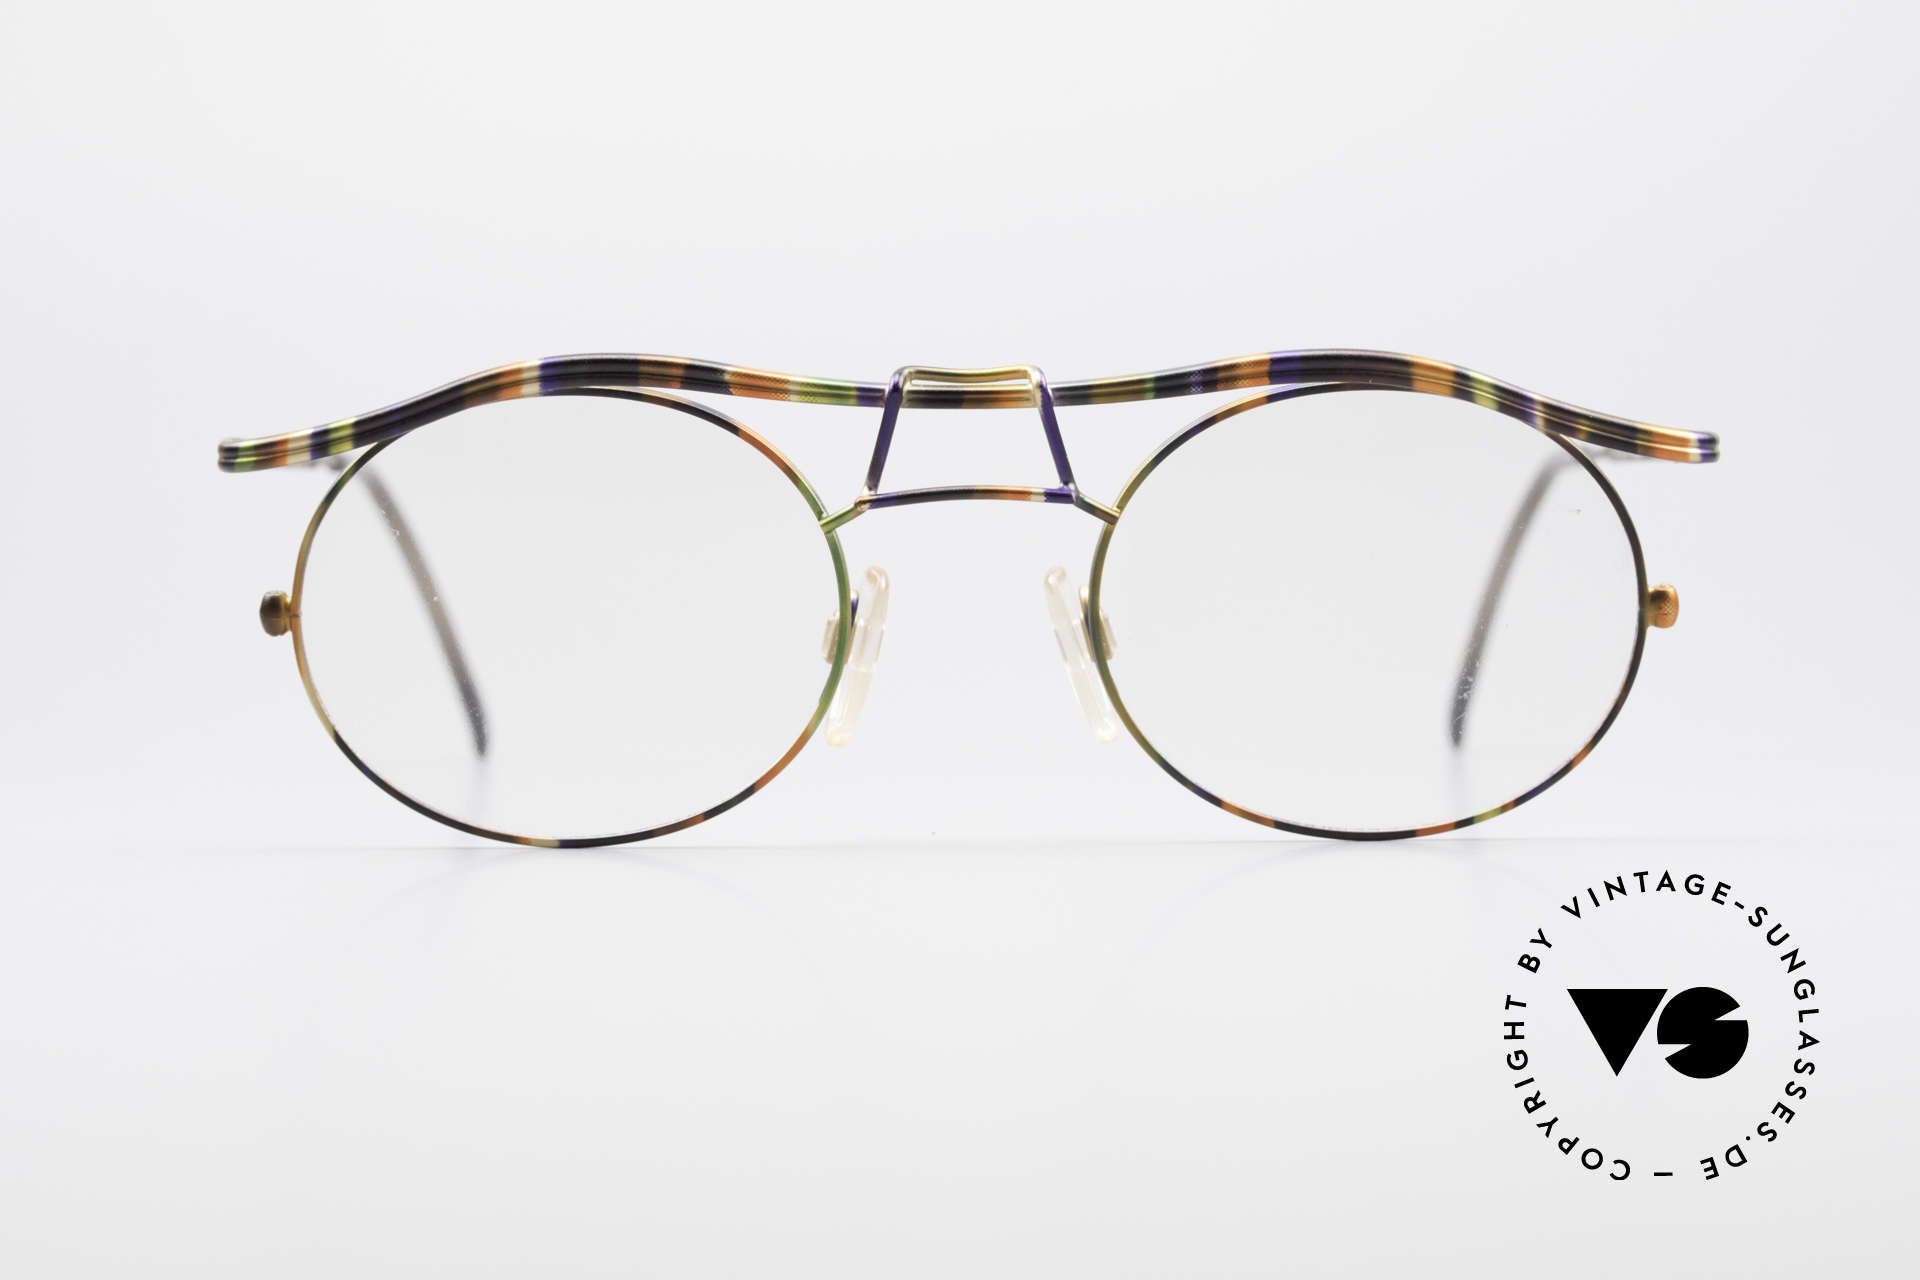 Cazal 1110 - Point 2 90's Industrial Eyeglass-Frame, the frame recalls the 90's industrial / steampunk design, Made for Men